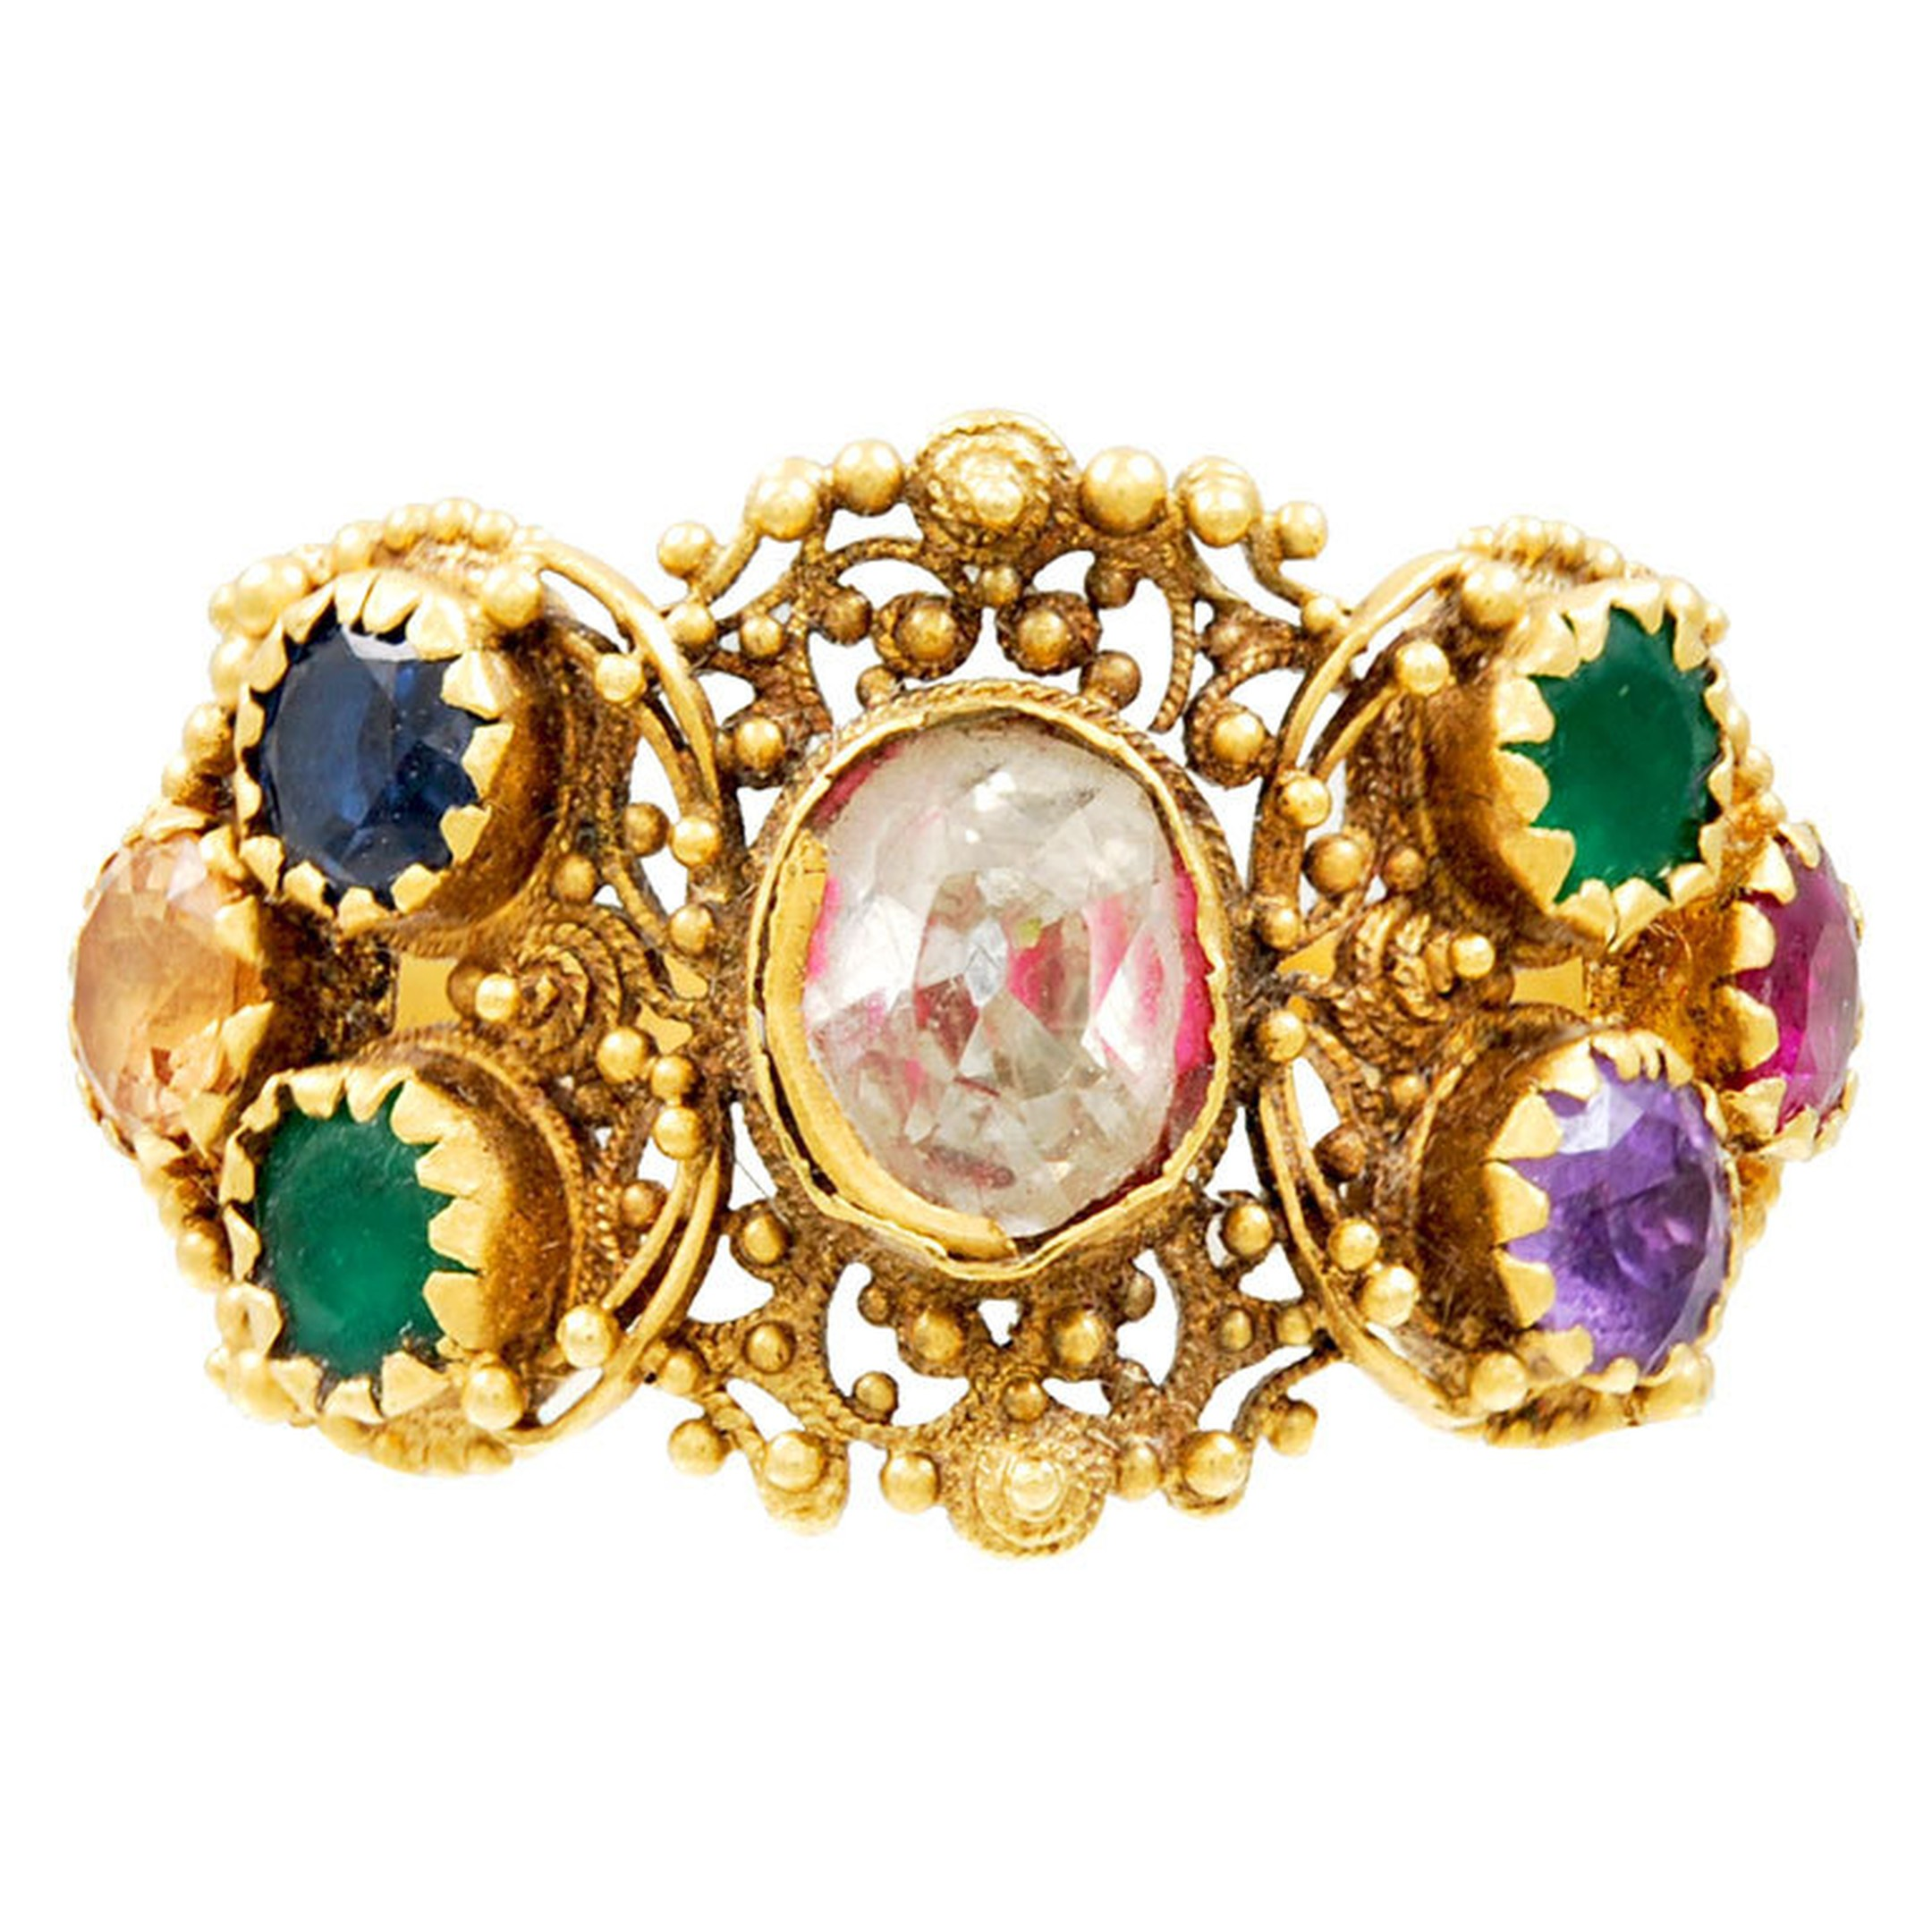 This antique Georgian ring spells out the word Dearest in diamond, emerald, amethyst, ruby, emerald, sapphire and topaz stones. Available from 1stdibs.com.